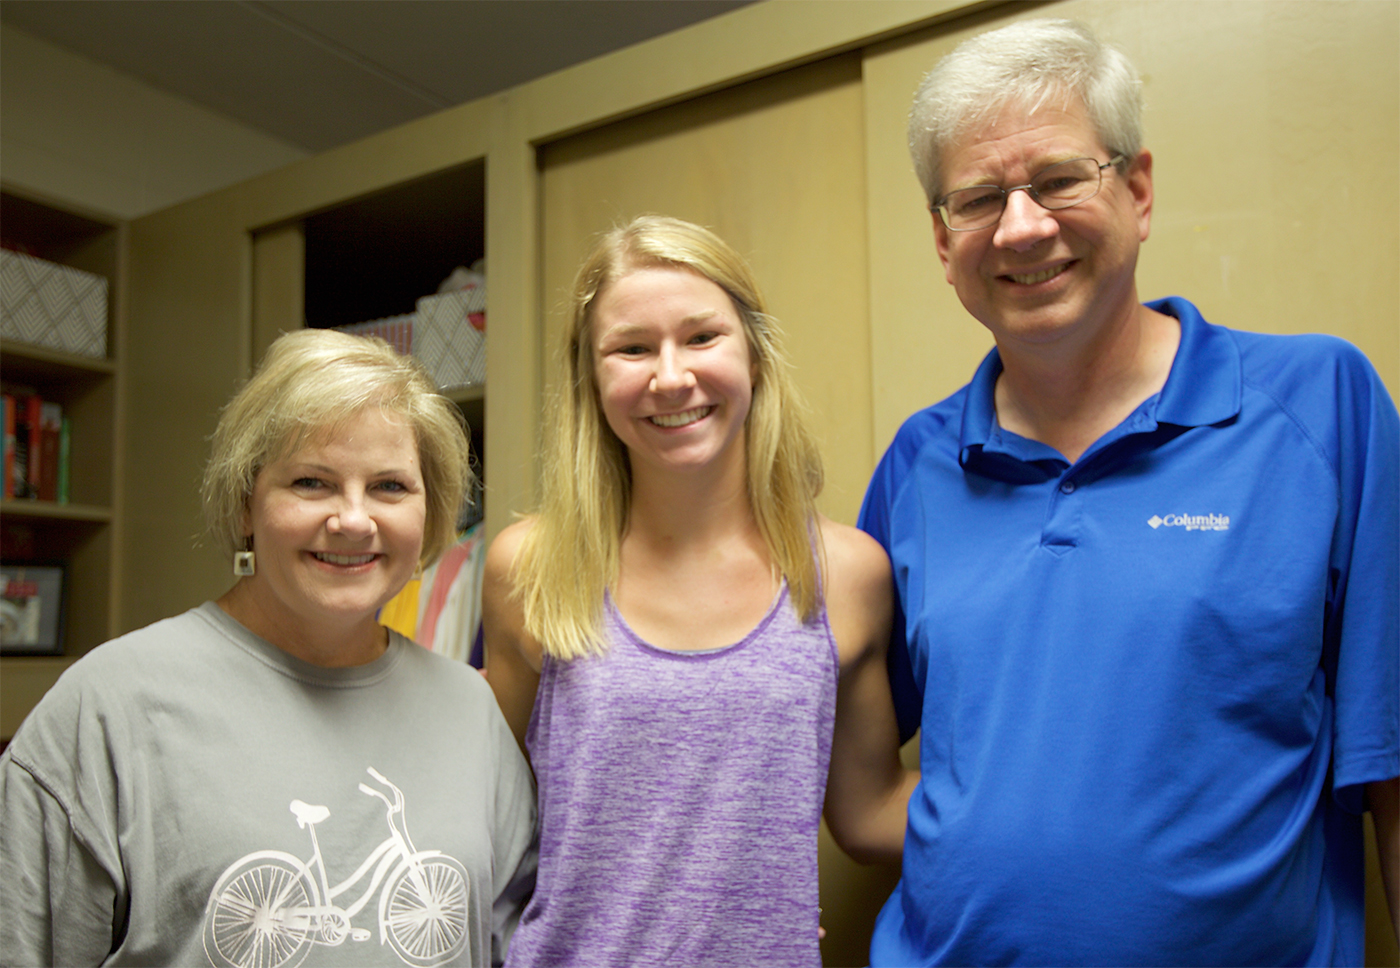 Millsaps College Move-In Day